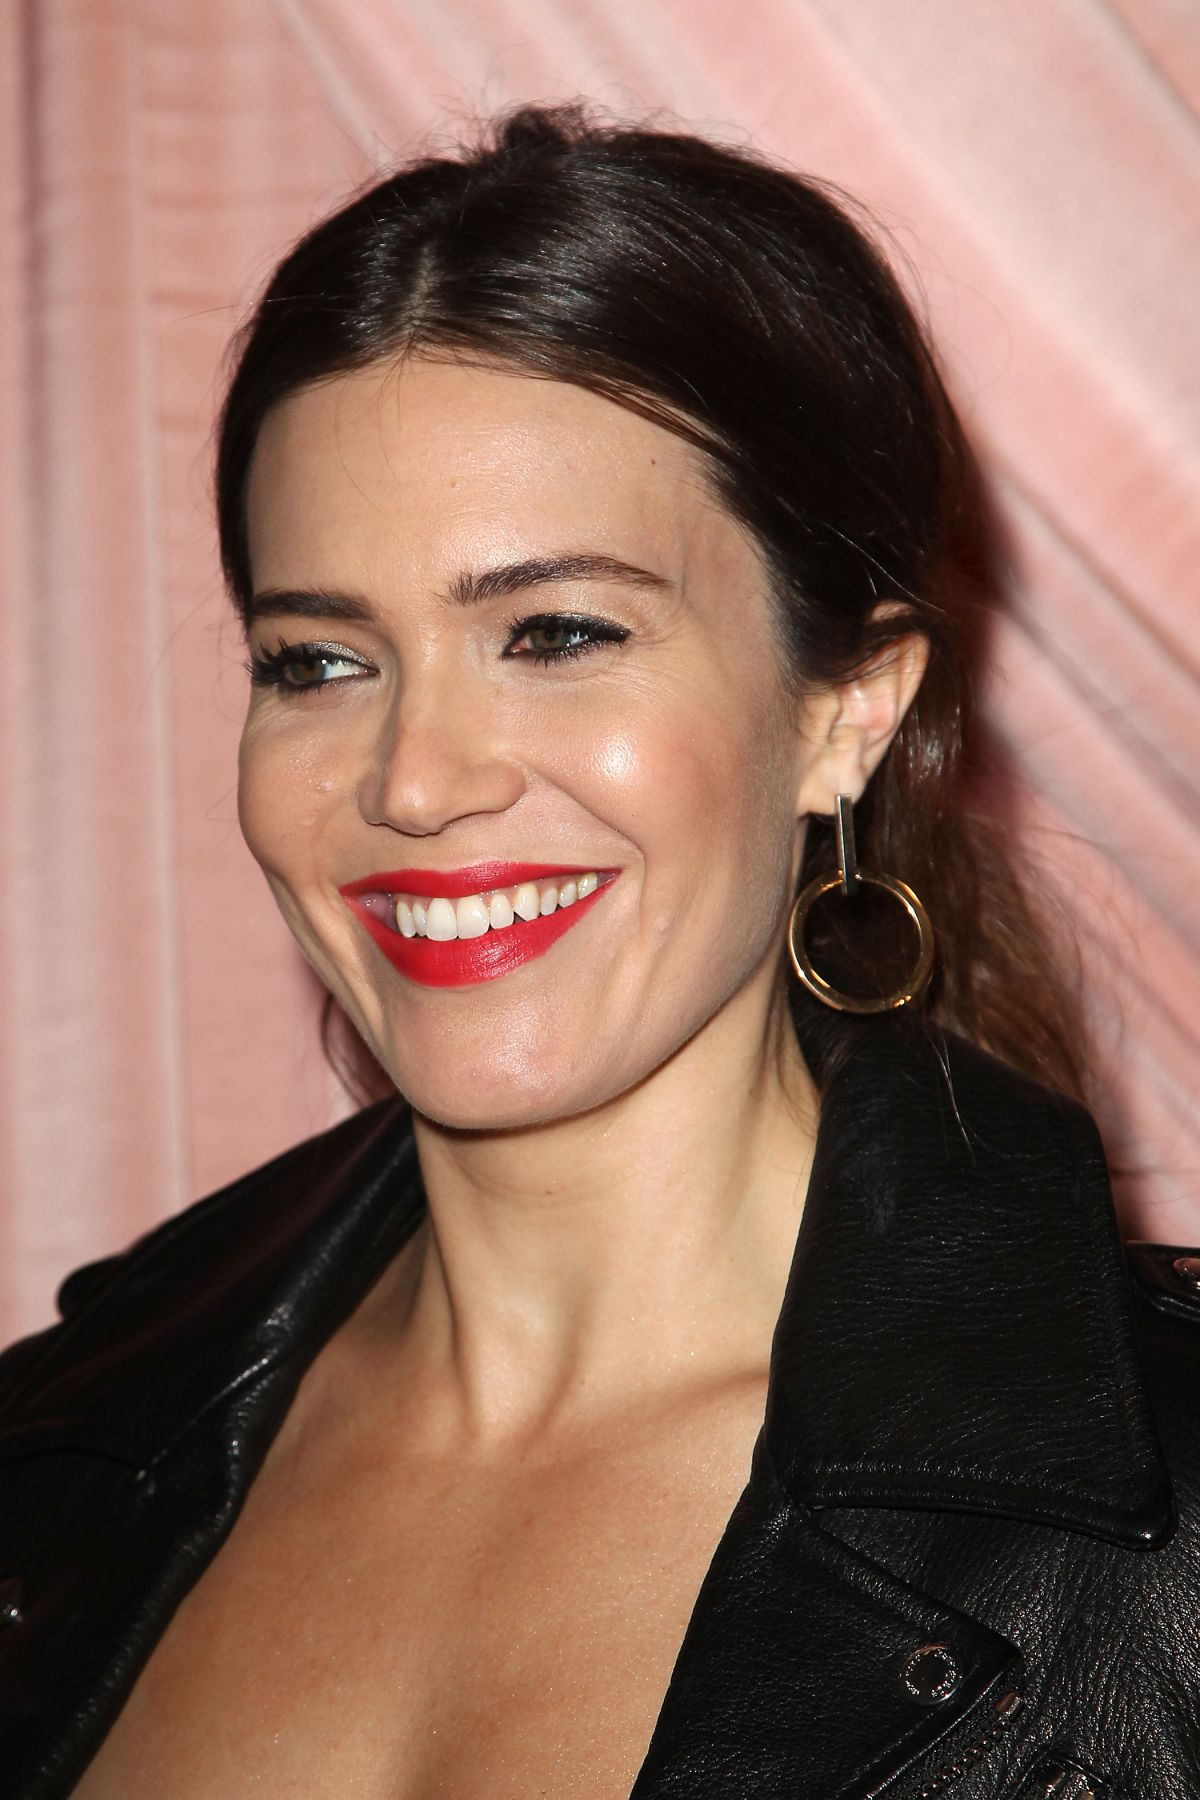 MANDY MOORE at Aice+Olivia by Stacey Bendet Presentation in New York 02/14/2017   mandy-moore-at-aice-olivia-by-stacey-bendet-presentation-in-new-york-02-14-2017_9